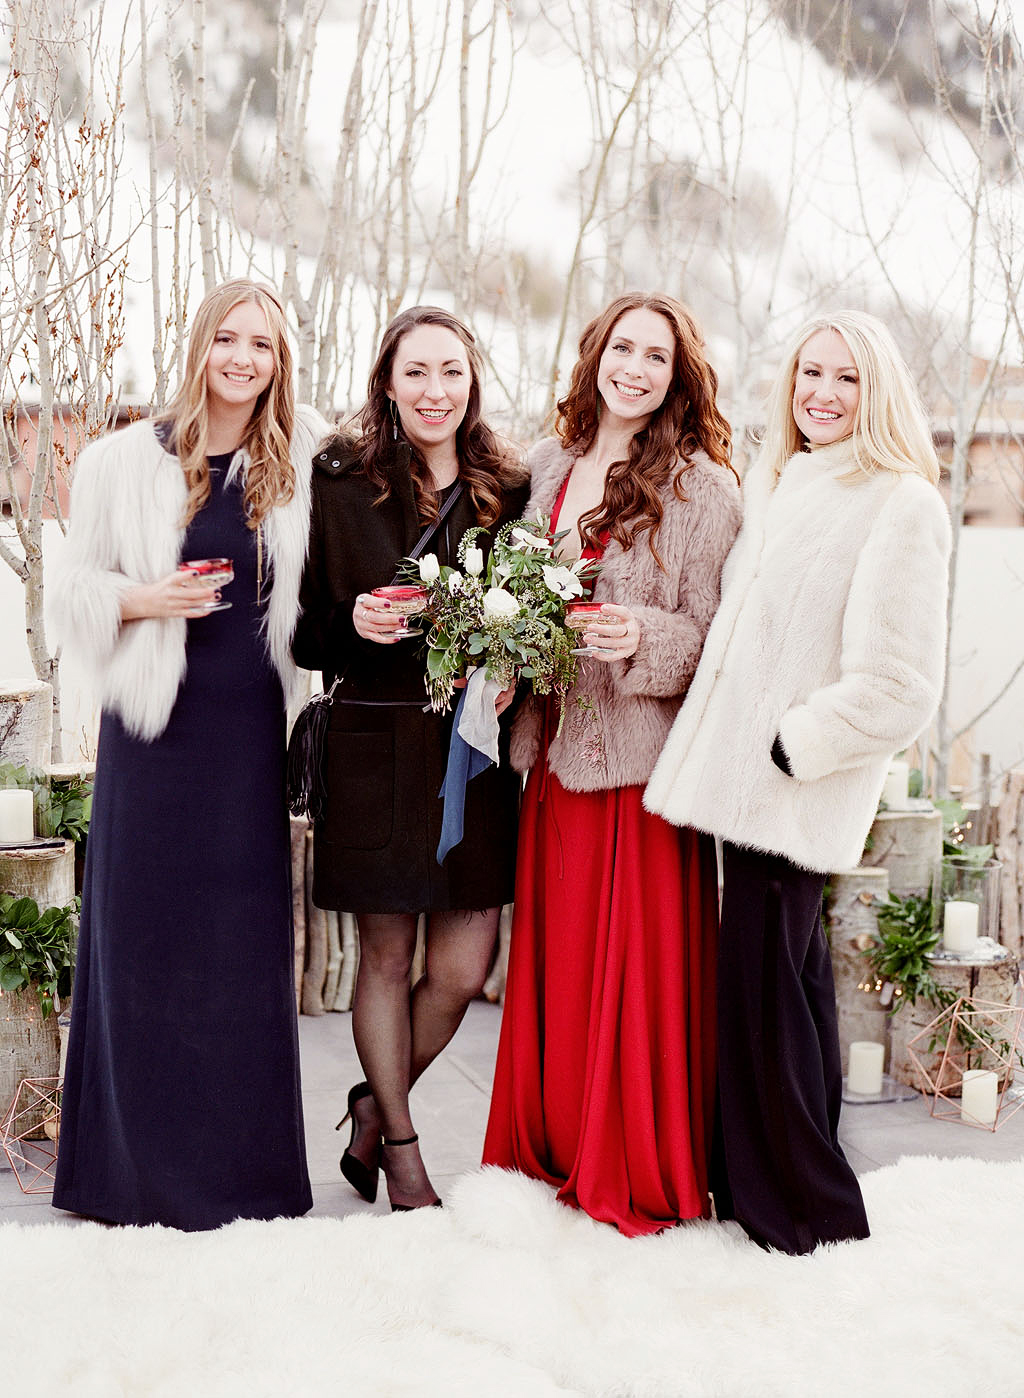 wedding guests in snow